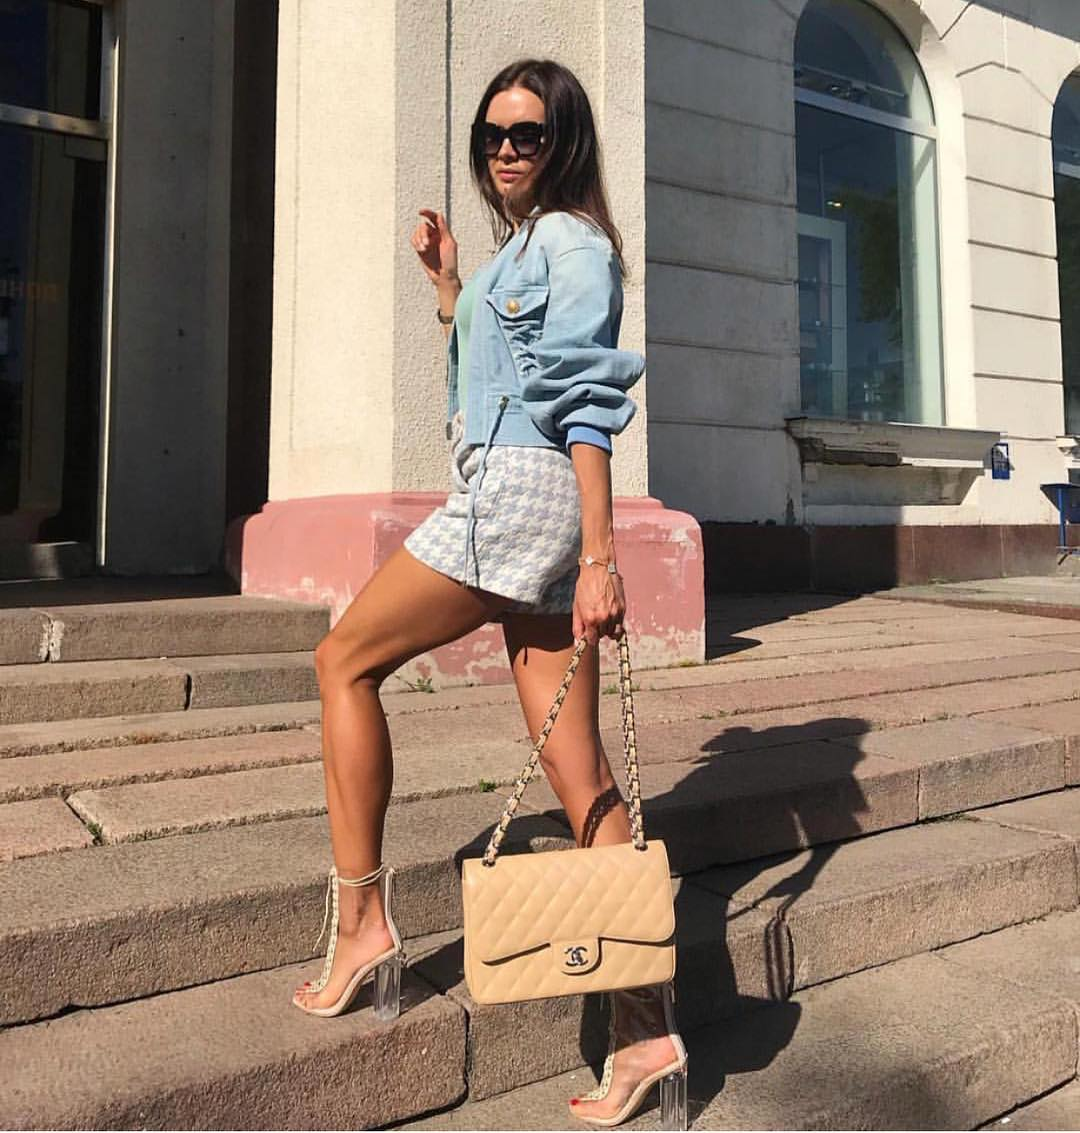 Light Blue Denim Jacket And Houndstooth Print Mini Skirt With Clear Booties 2020